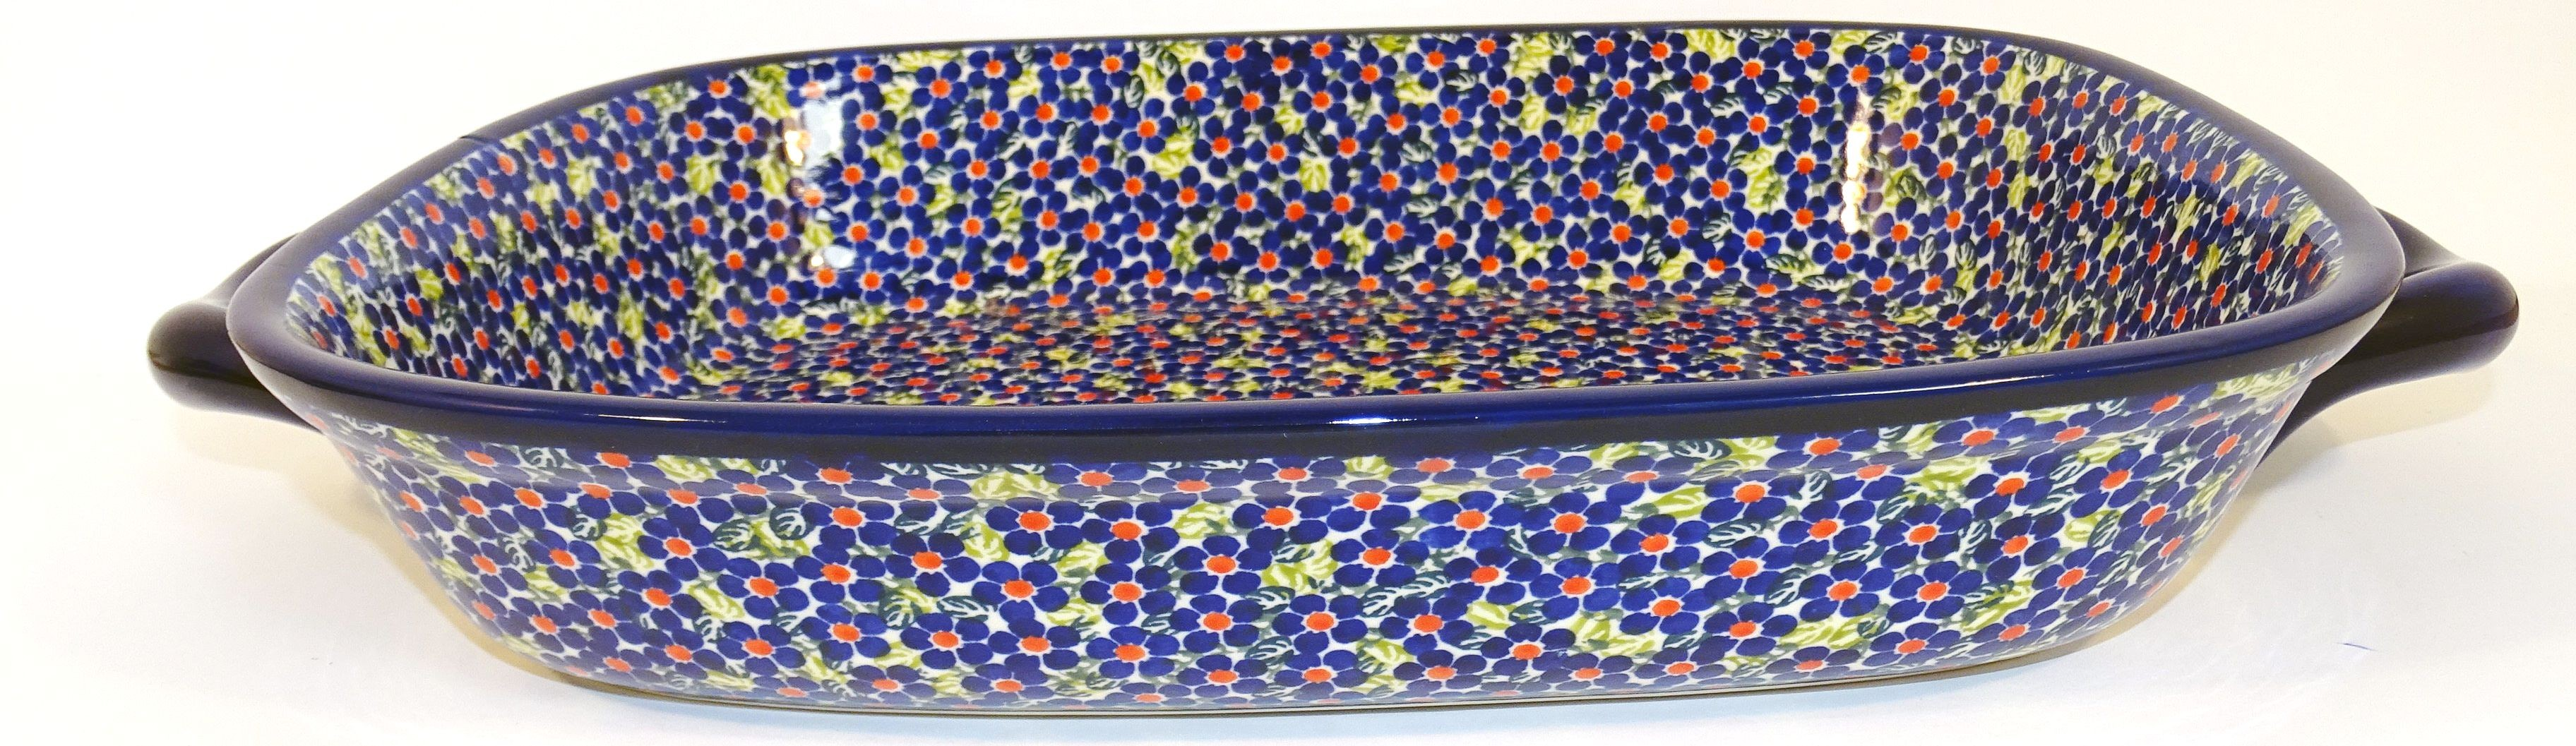 """Polish Pottery 14"""" FRIENDSHIP Serving Trays With Handles 